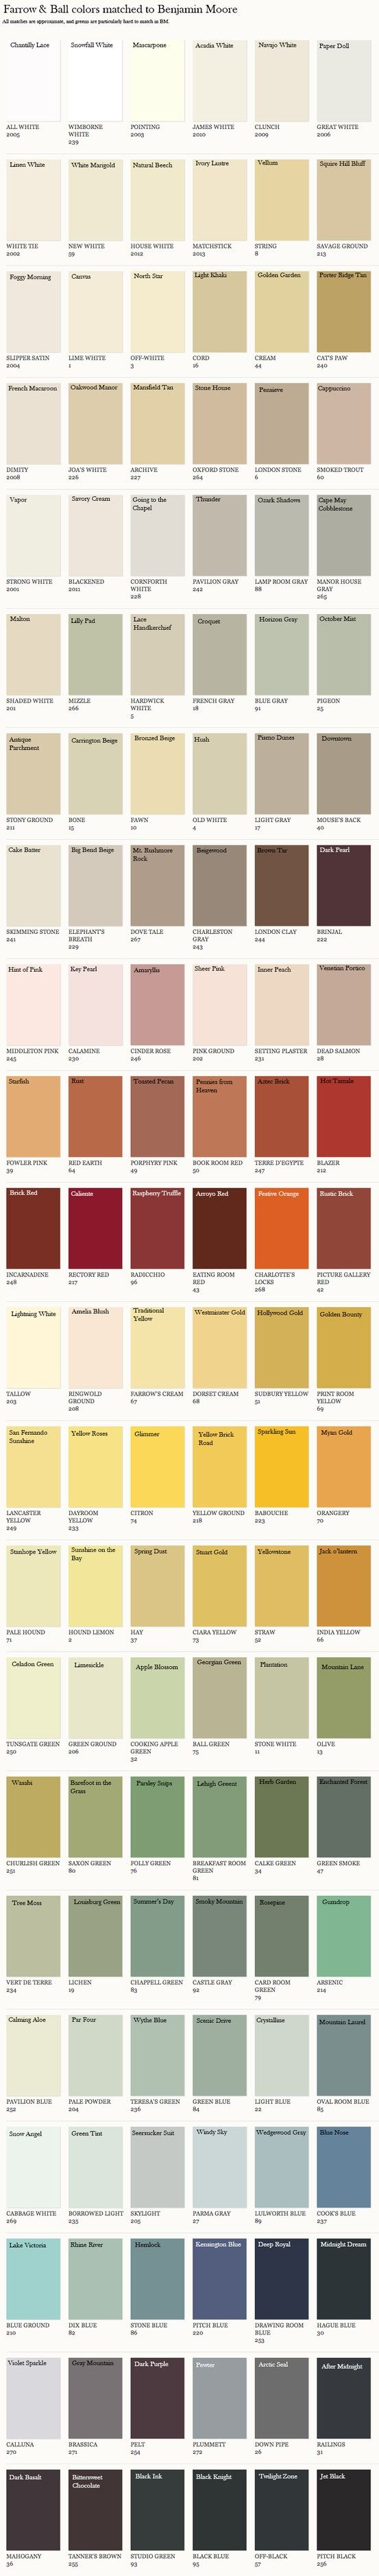 Farrow & Ball paint colors matched to Benjamin Moore colors. Everything is approximate, and F colors will have a much greater depth of color, but it gives a limited palette and starting off point.